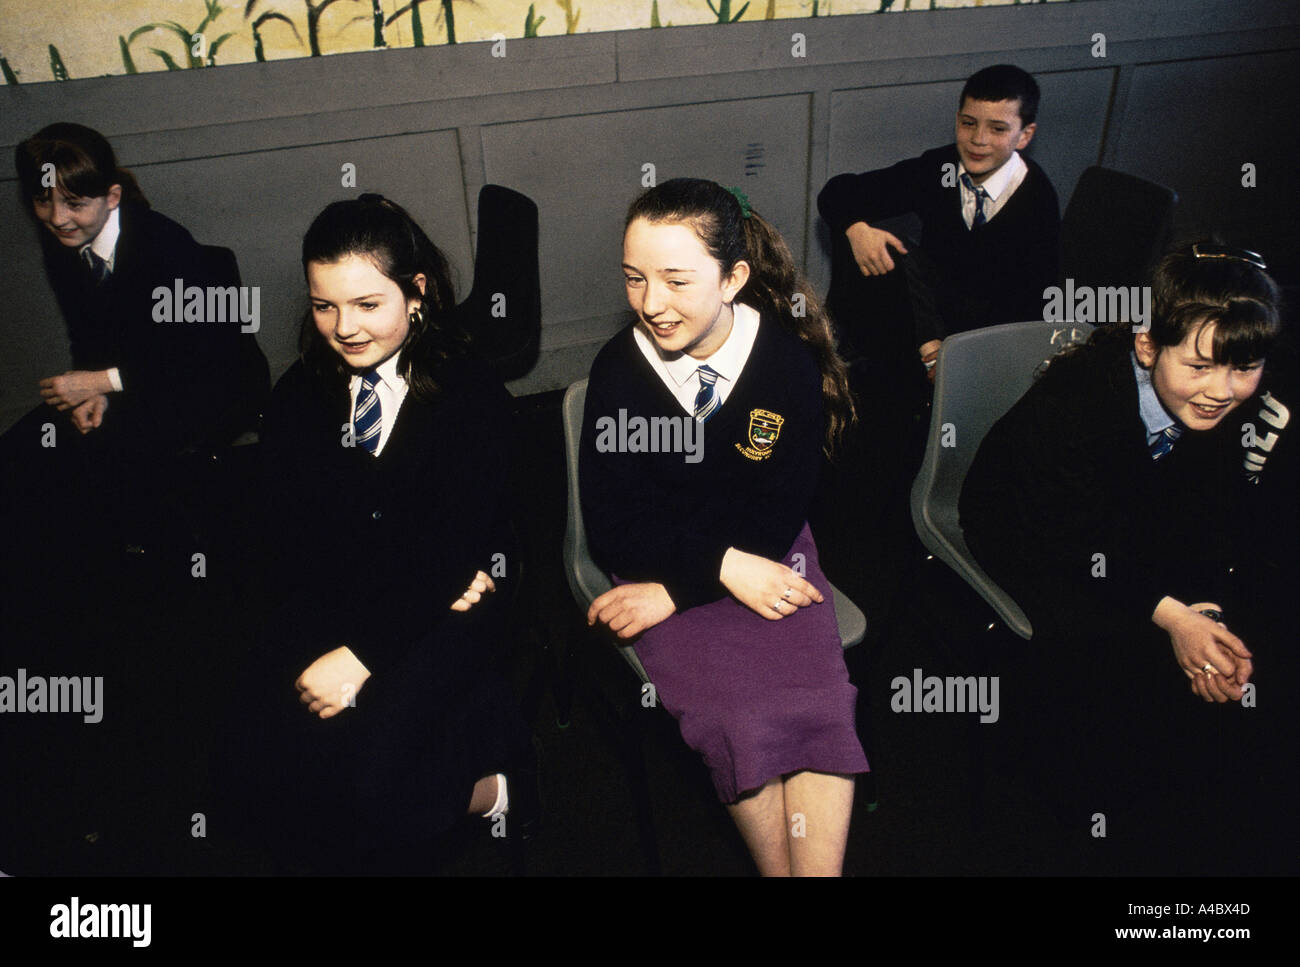 HOLYROOD SECONDARY SCHOOL CHILDREN DURING DRAMA CLASS, GLASGOW, - Stock Image